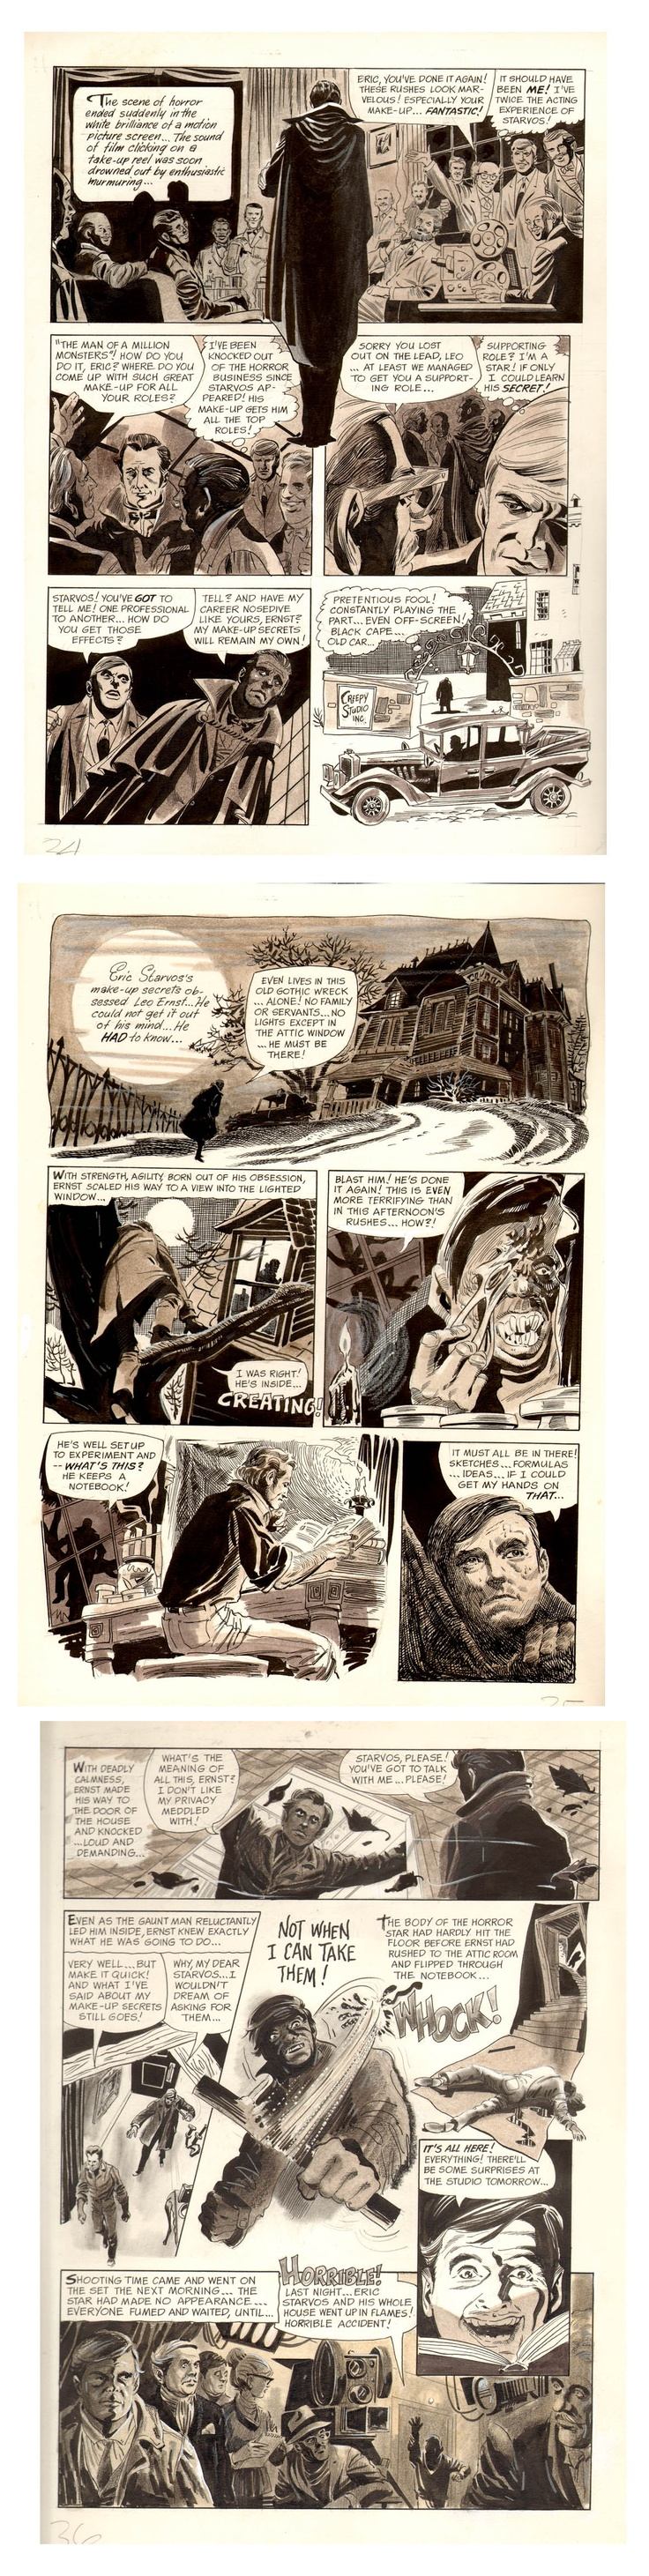 """JOE ORLANDO """"Under the Skin"""" from Eerie #3 . 1966. Written by Archie Goodwin. COMPLETE 7 PAGE STORY! Incredible monster kid story with art assist from Jerry Grandenetti. Beautiful multi-tone pages on flexible art board. My favorite Orlando story at Warren. $3300"""